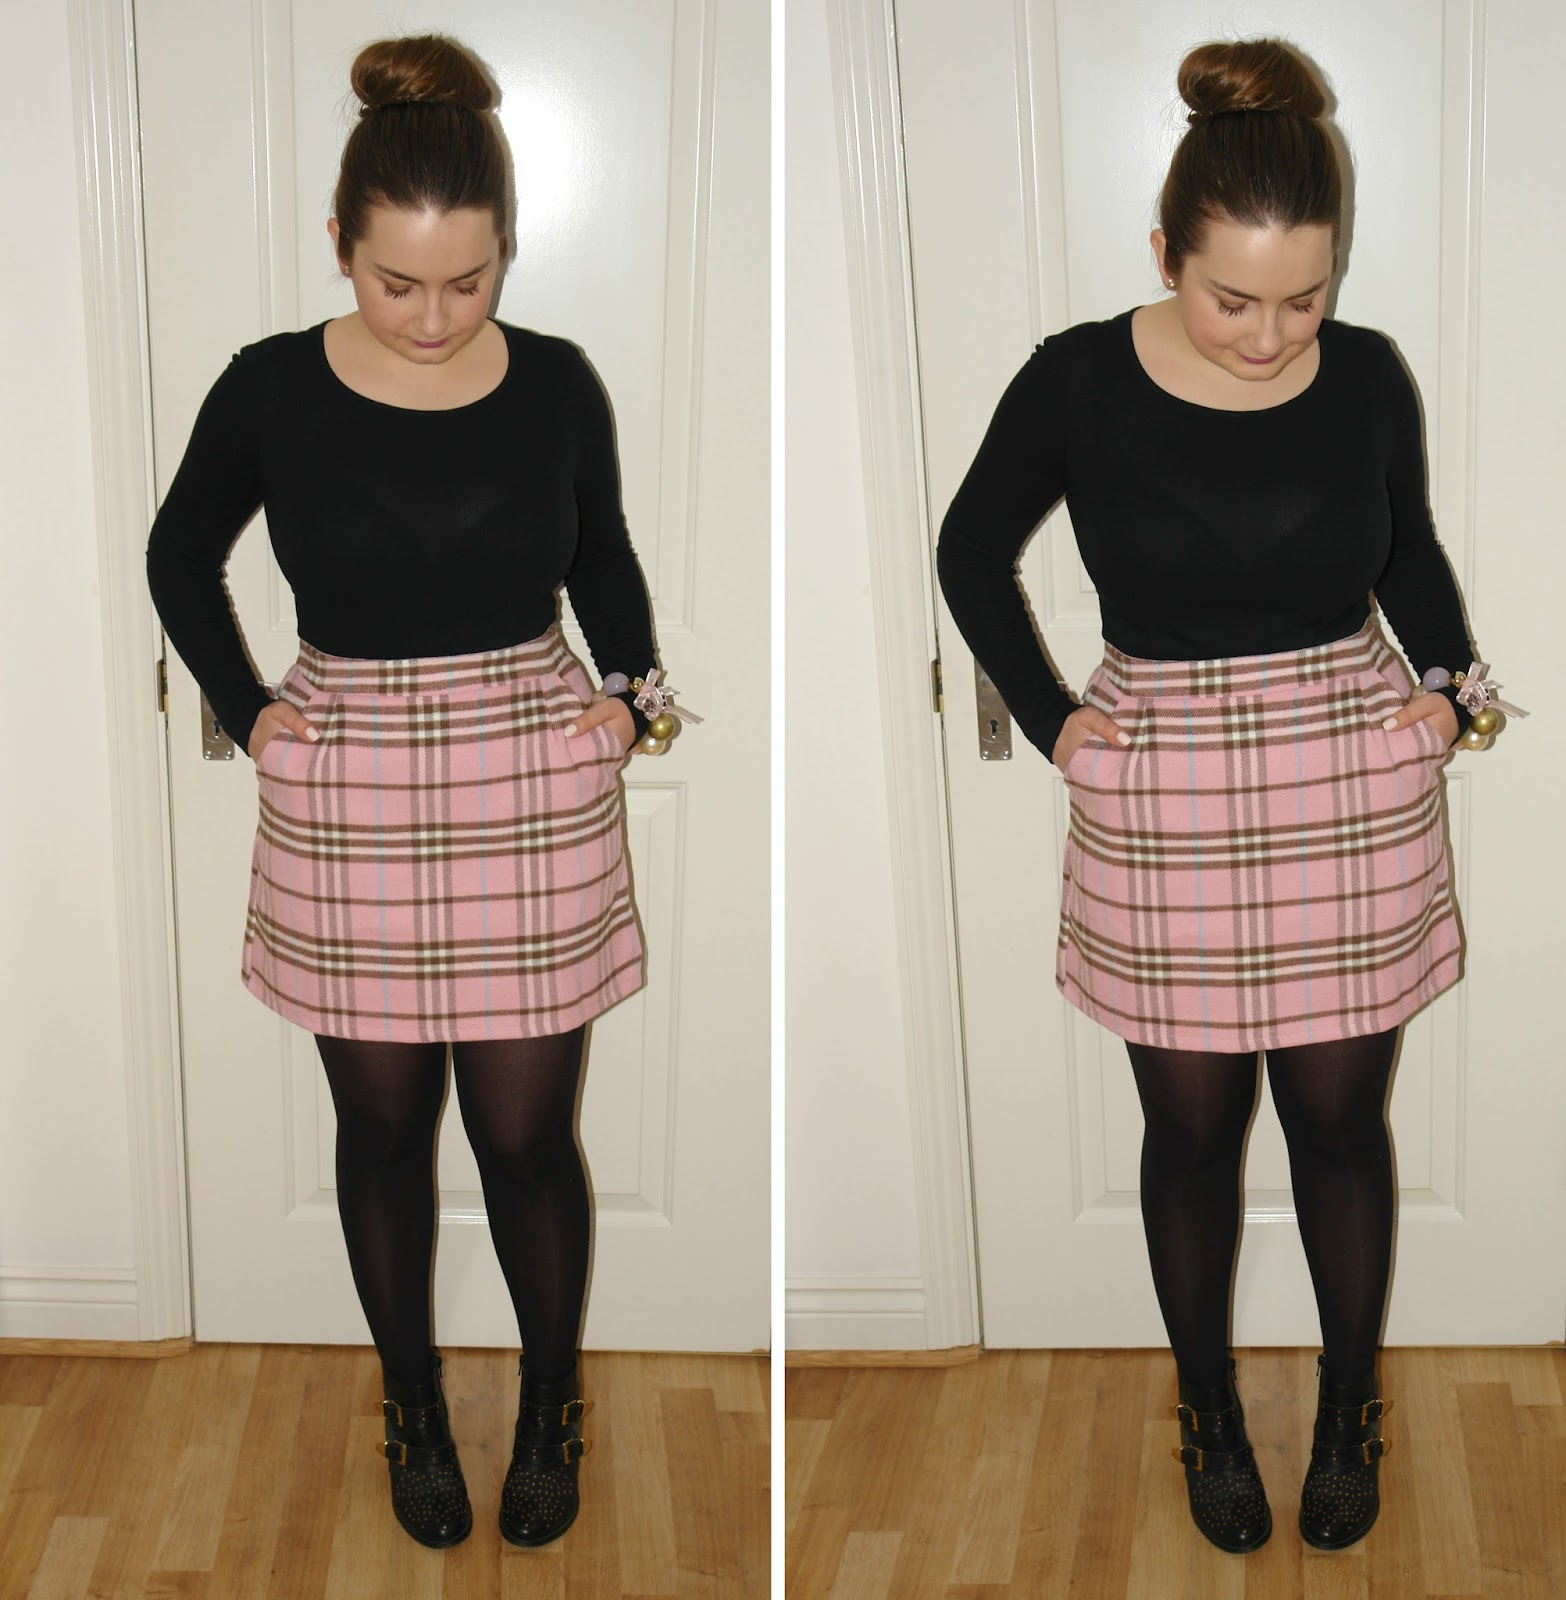 WHAT I WORE TODAY: pink tartan mini skirt from New Look, Cameo Rose Pink Tartan Mini Skirt £17.99, ankle boots, black, bracelets, jewellery, New Look, pink, rings, skirt, tartan, Topshop, WHAT I WORE TODAY, WIWT, Primark, outfit, UK fashion blogger